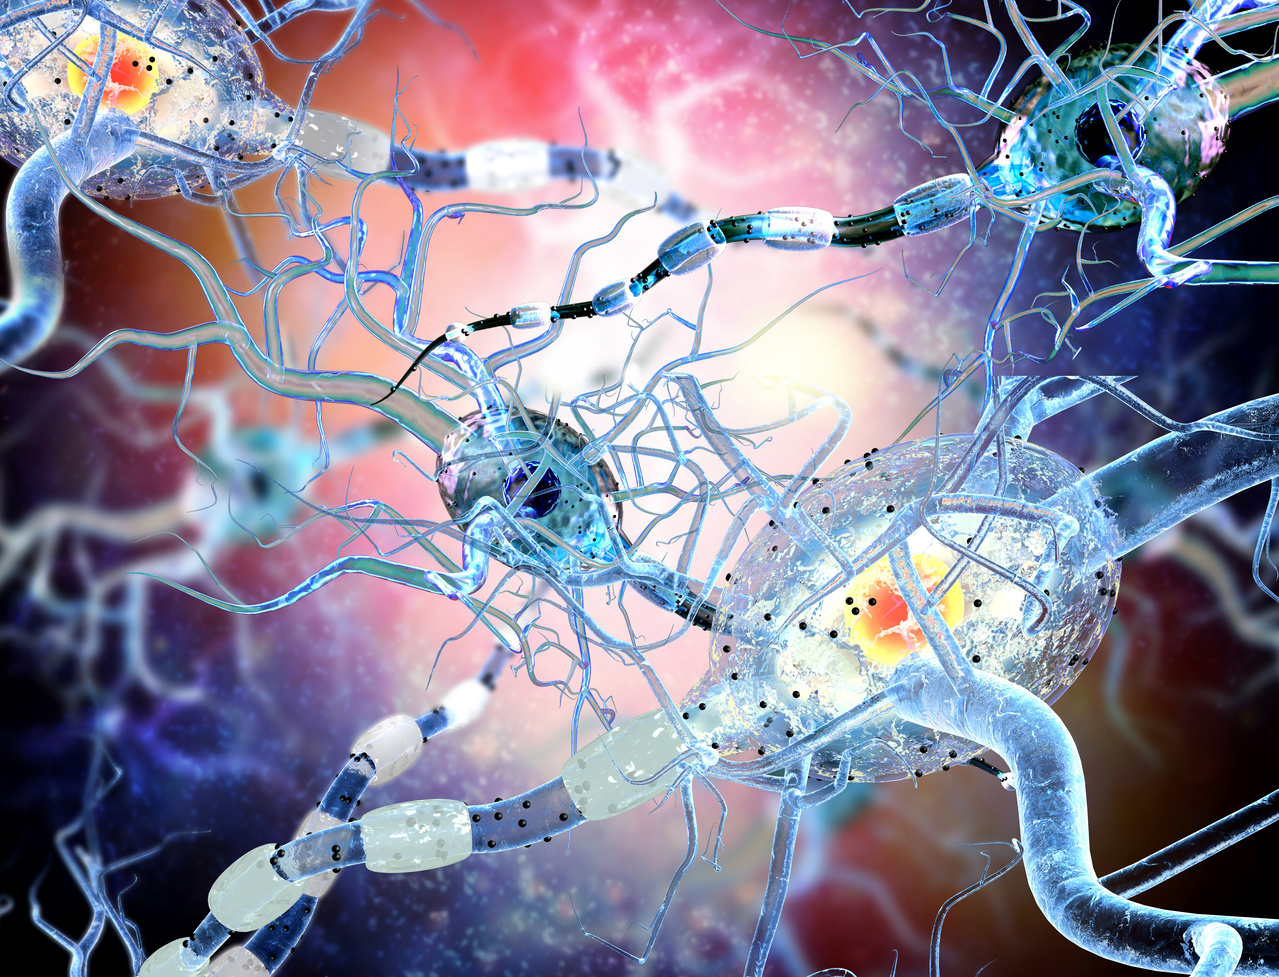 Fingolimod Linked with Lower Relapse Rate in Pediatric Patients with Multiple Sclerosis